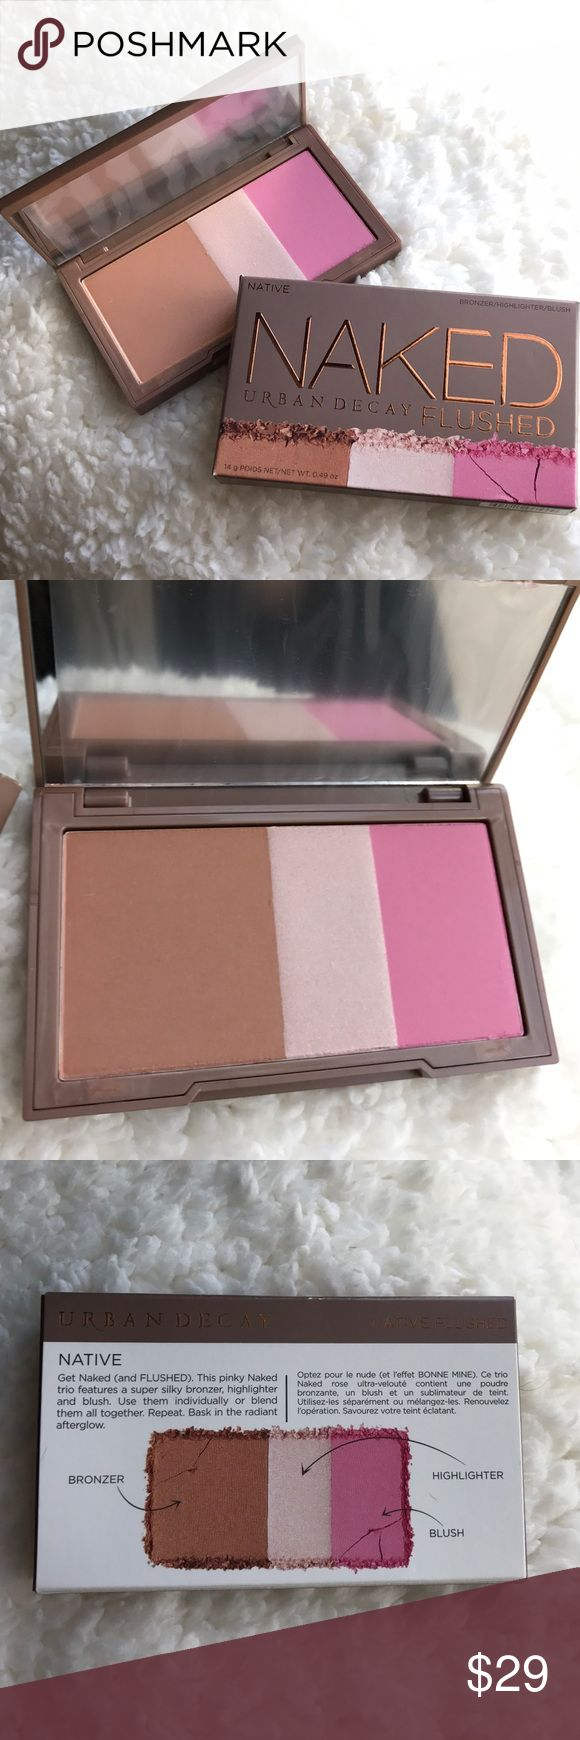 Urban Decay Naked Flushed Palette - Native Brand new in box! Never searched or used! Mirror still has protective plastic. Urban Decay Makeup Bronzer